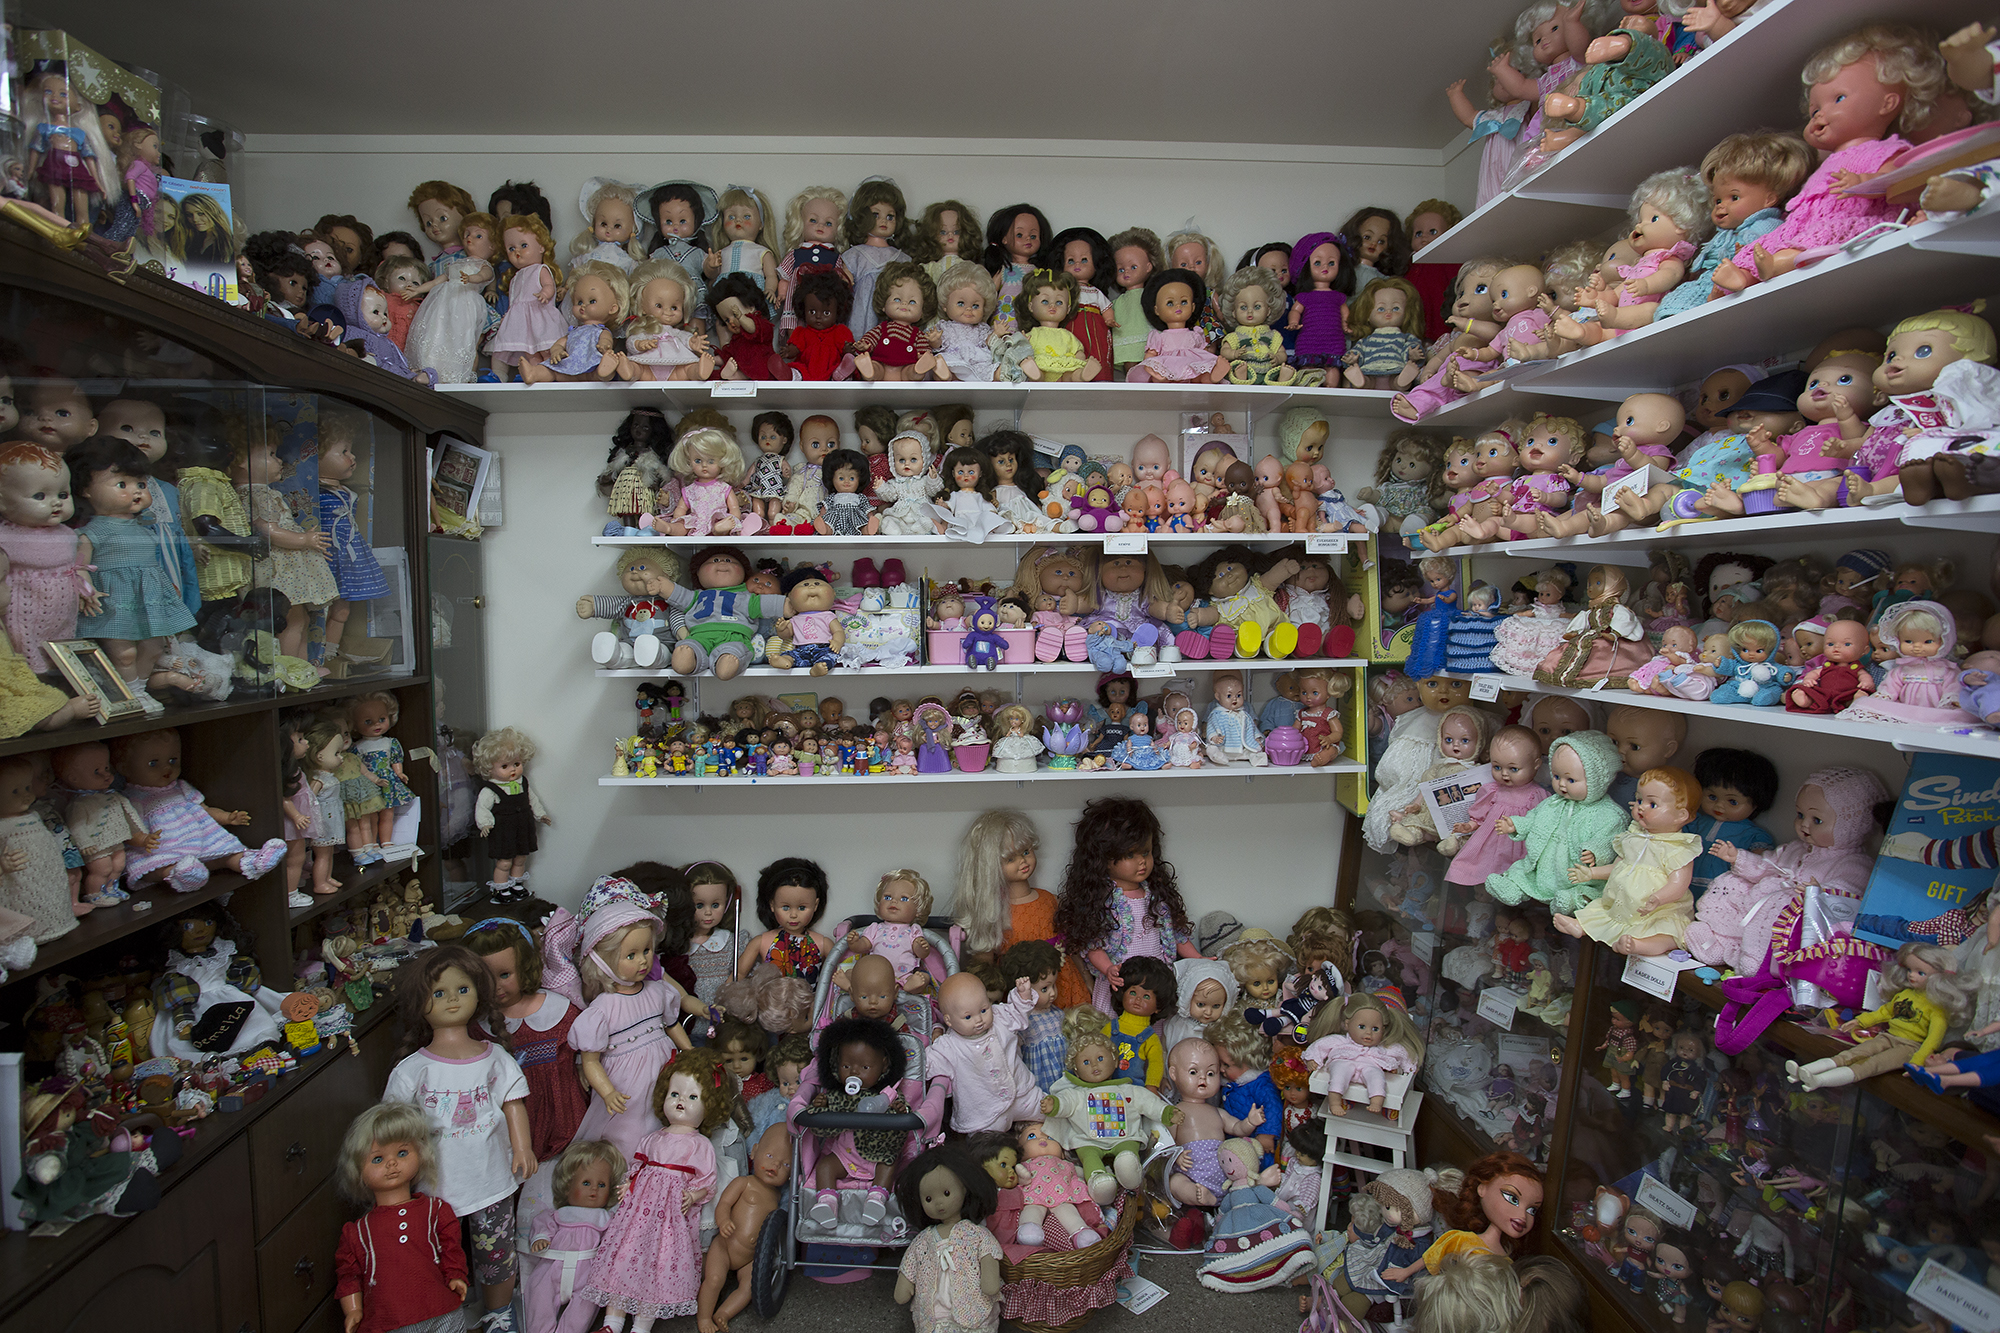 Judith has a purpose built dolls room on her property in Wakefield, Nelson. The room is protected from the sun to prevent fading and is home to over 2000 dolls.